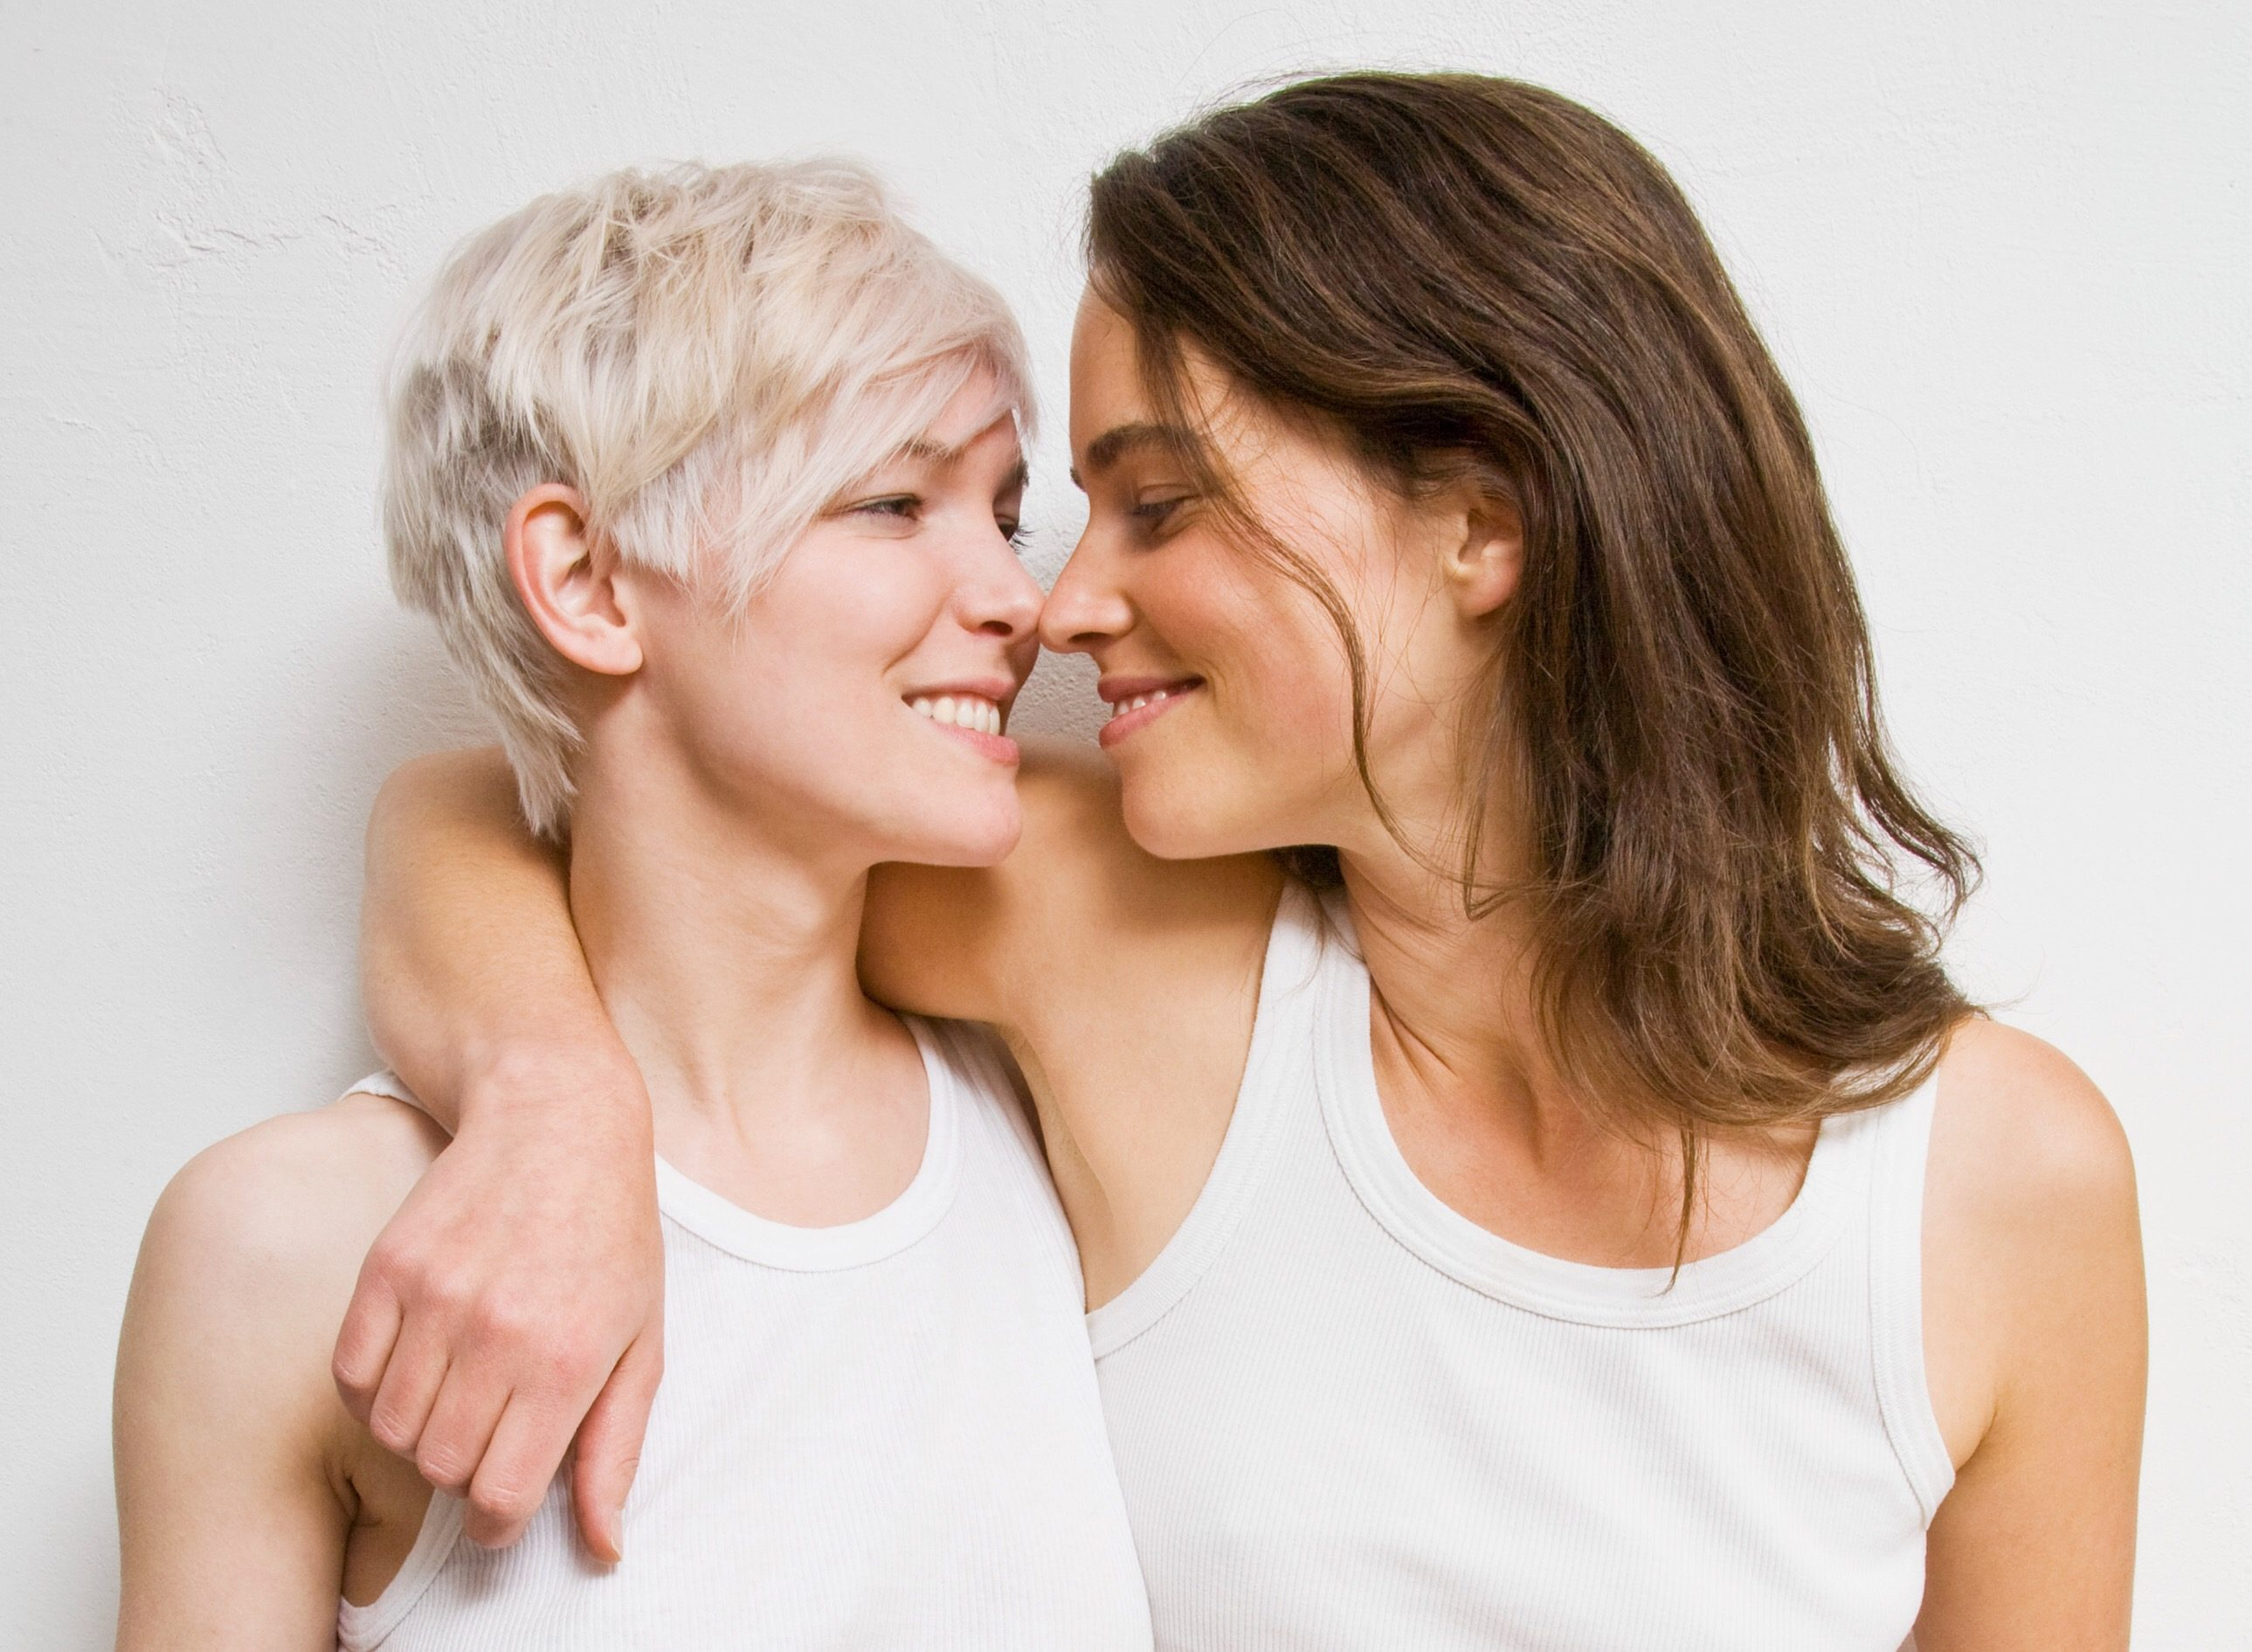 Girls and older woman lesbian sex stories